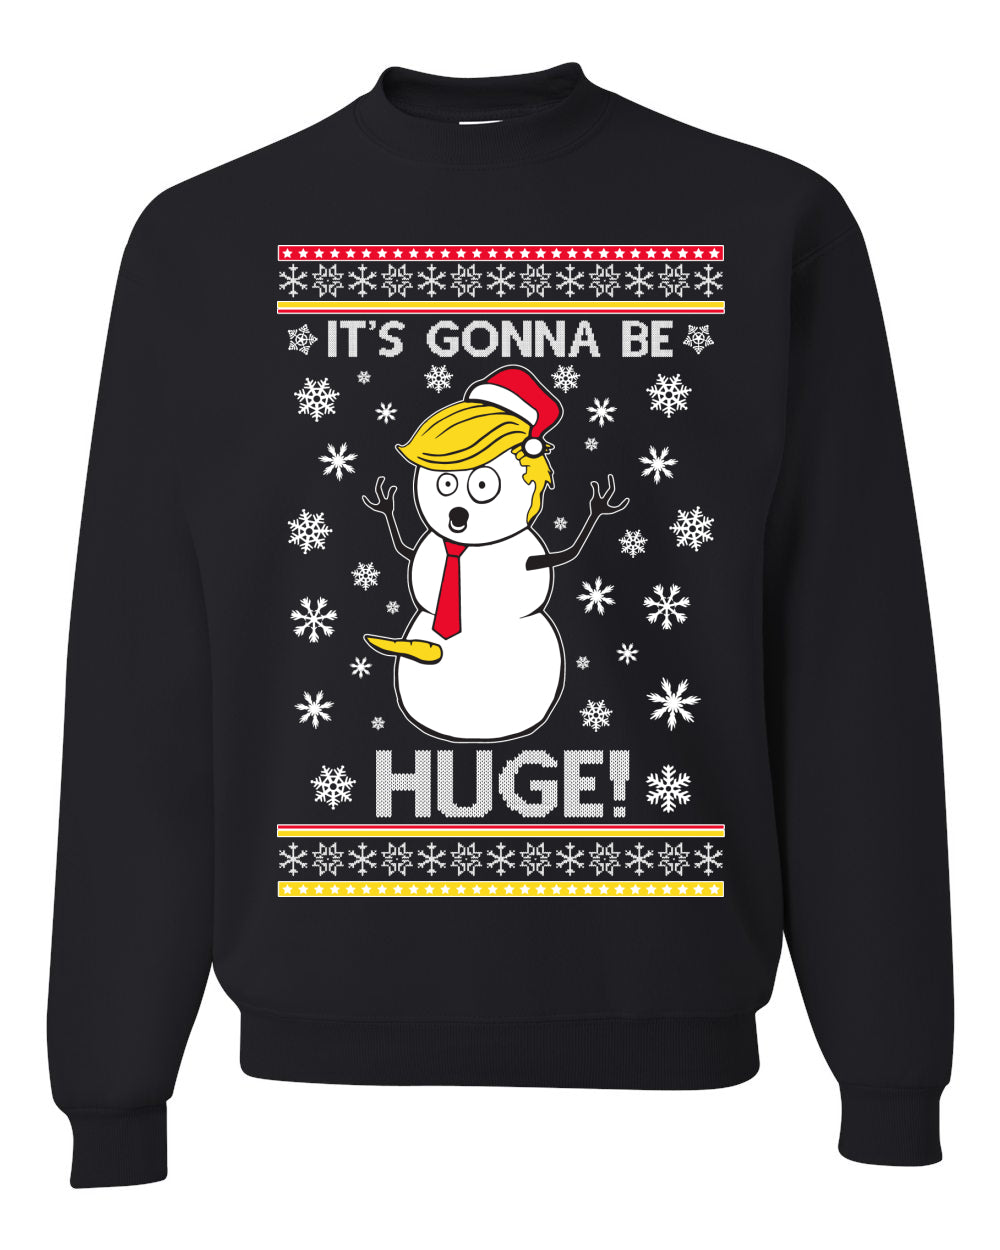 It's Gonna Be Huge Funny Donald Trump Snowman Xmas Christmas Unisex Crewneck Graphic Sweatshirt